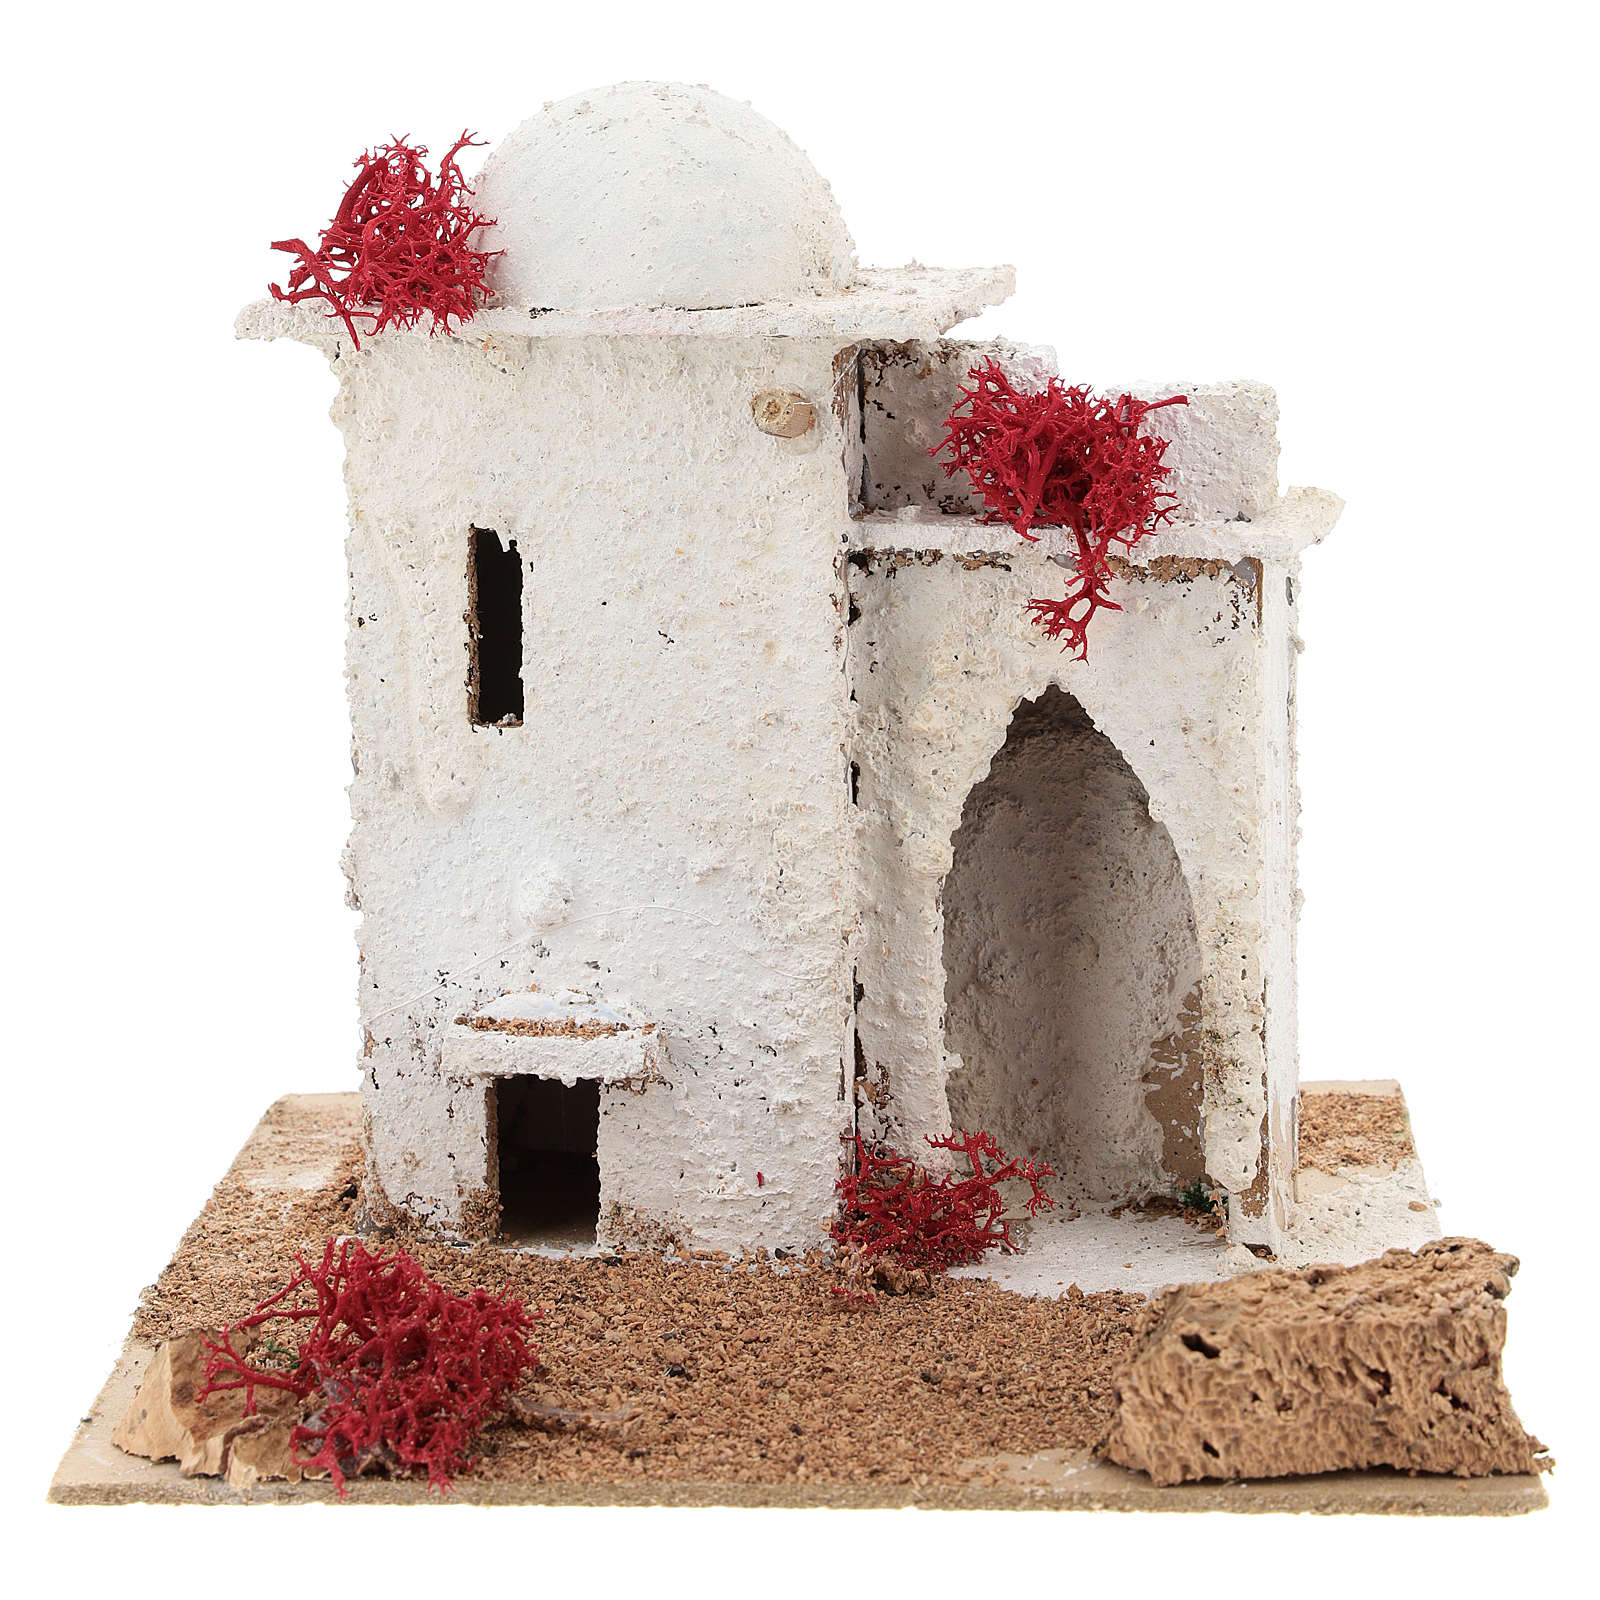 Arabic style house with pointed arch door for Neapolitan Nativity scene of 6 cm 4